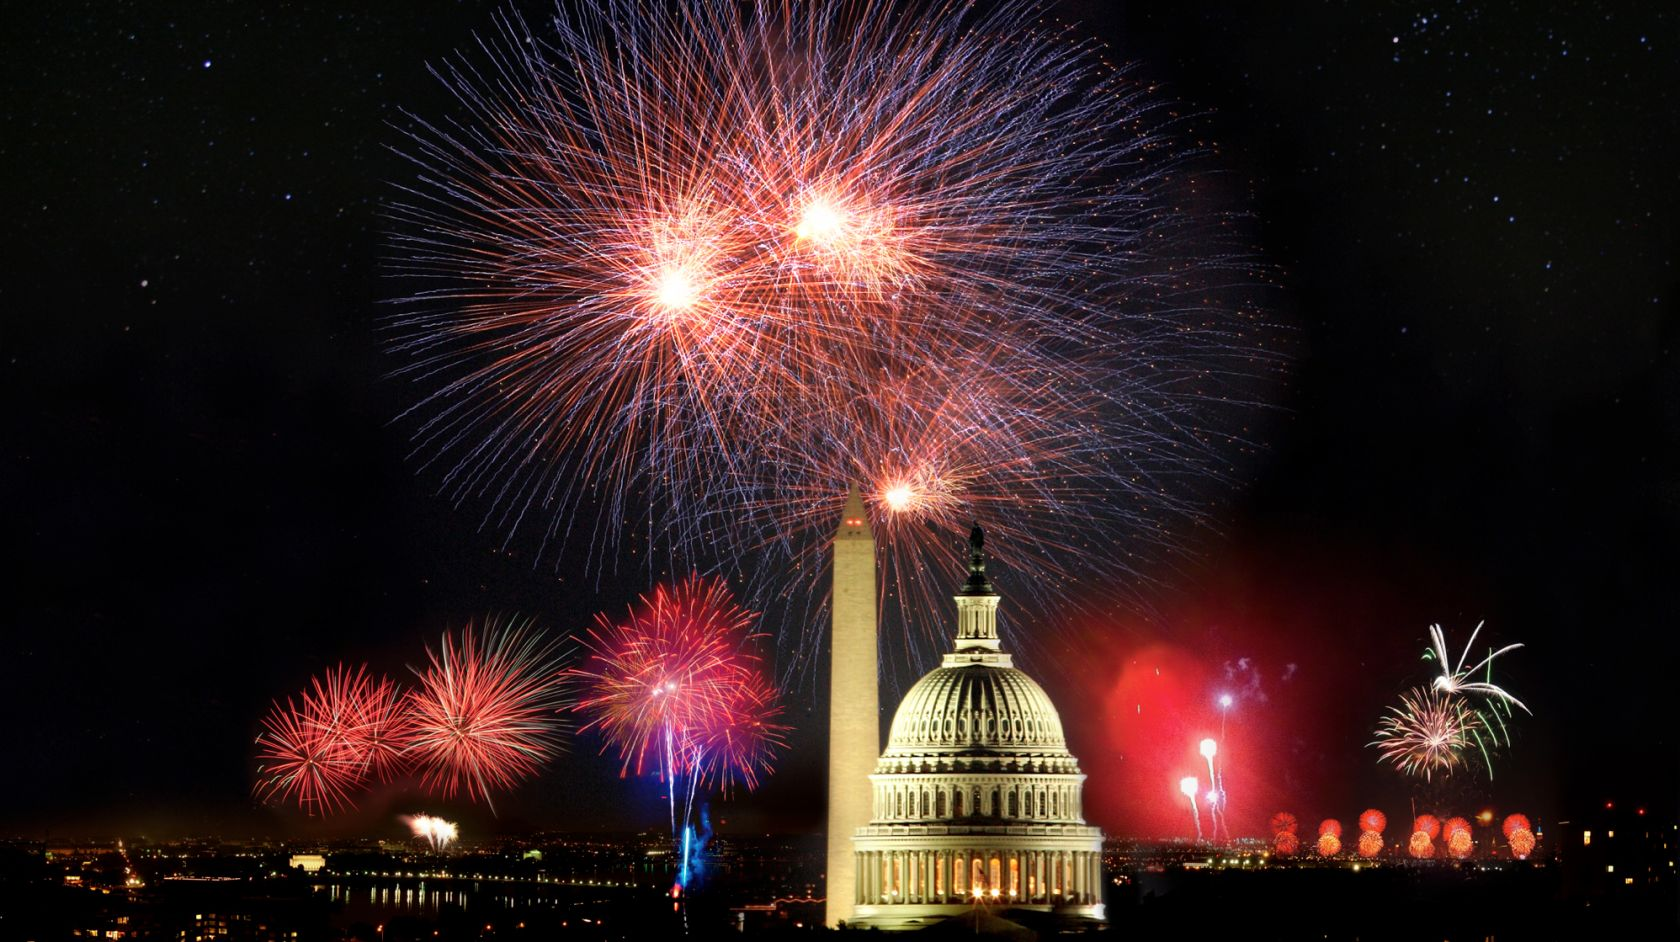 Patriotic fireworks explode over iconic Washington DC landmarks